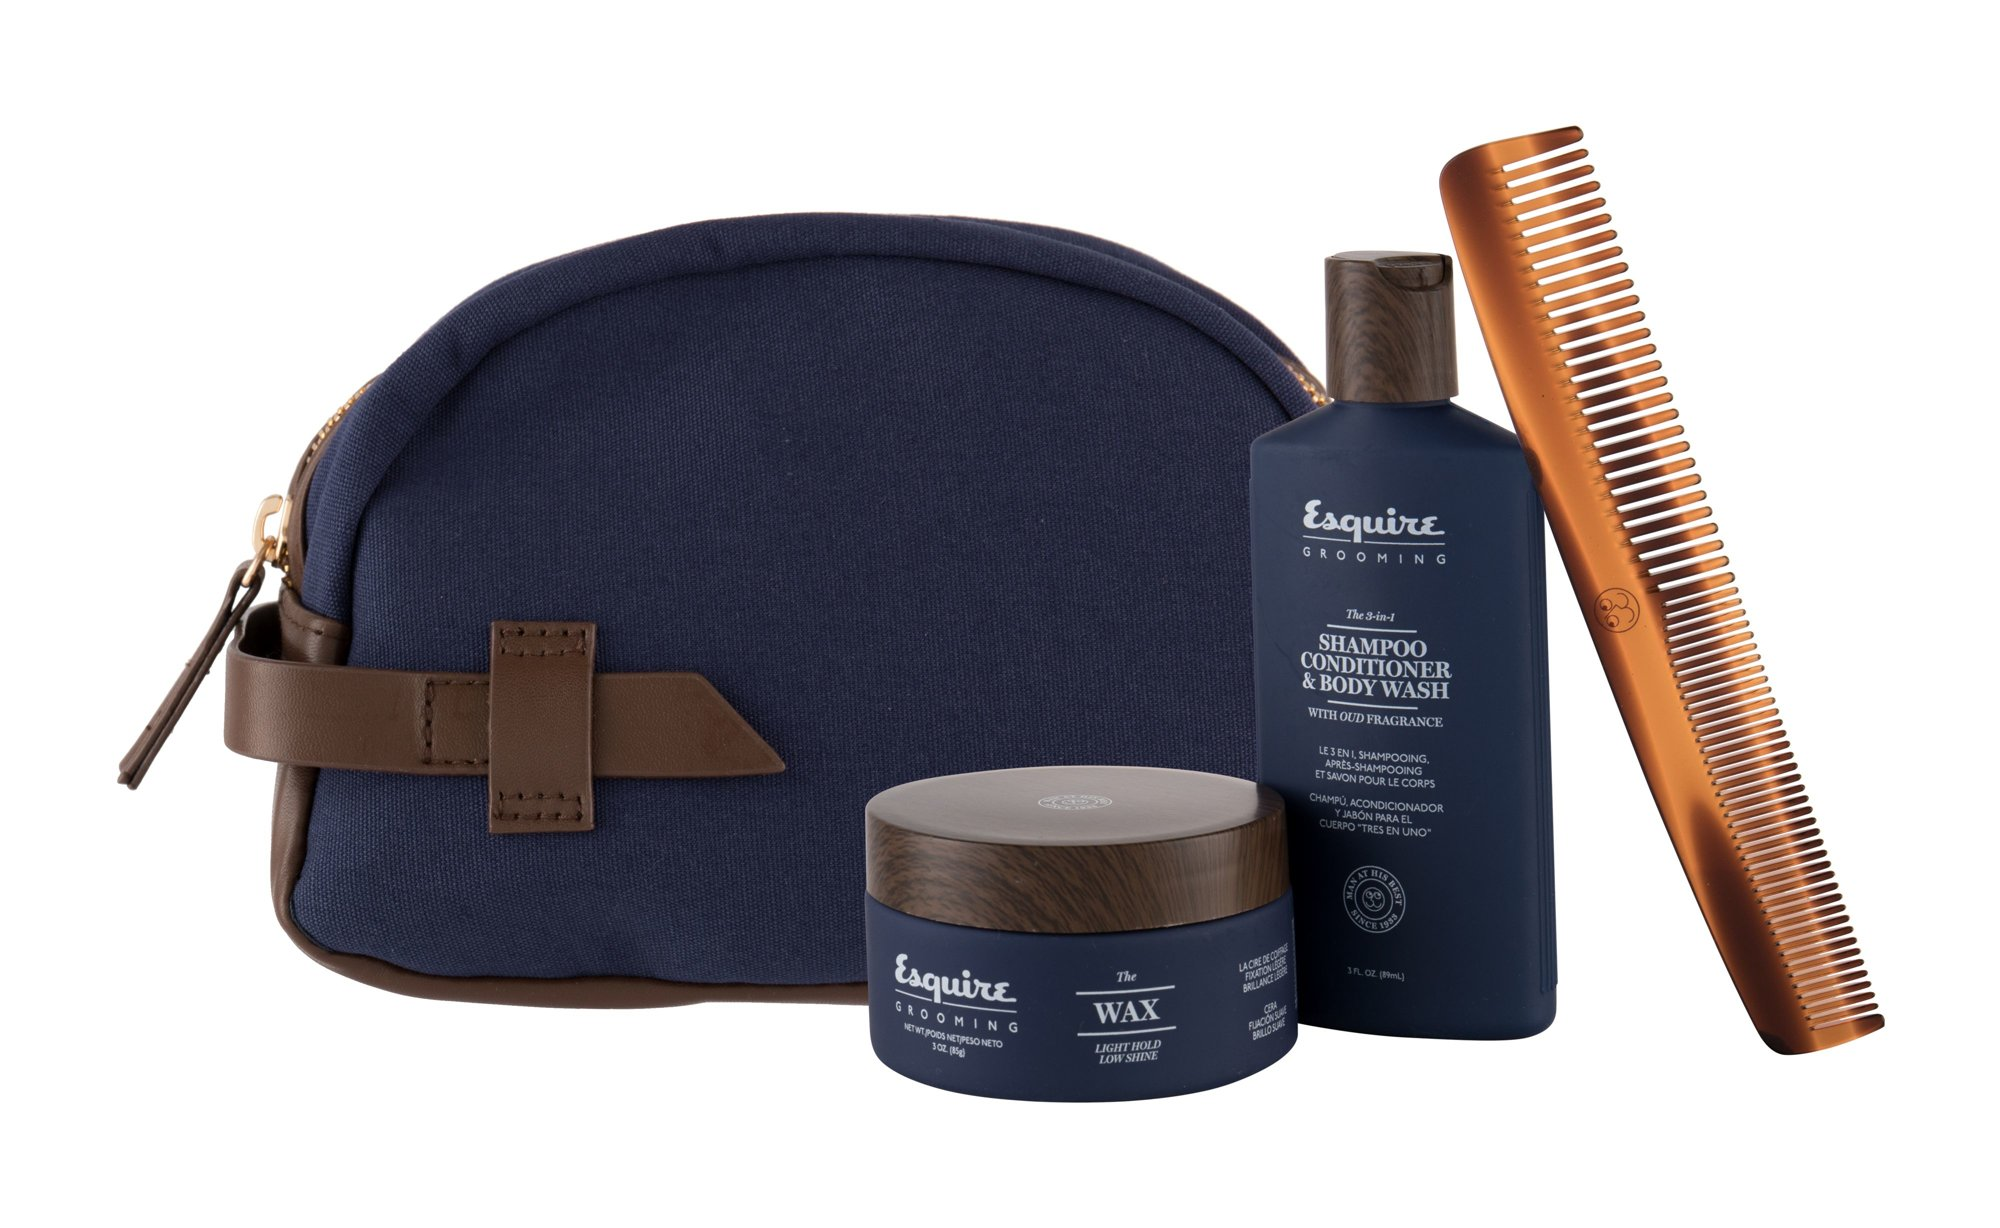 Farouk Systems Esquire Grooming The 3-In-1 (Šampo6n, M, 89 ml, sprchový gel 3in1 89 ml + vosk na vlasy The Wax 85 g + hřeben Classic Travel Dual Comb 1 ks + kosmetická taška)